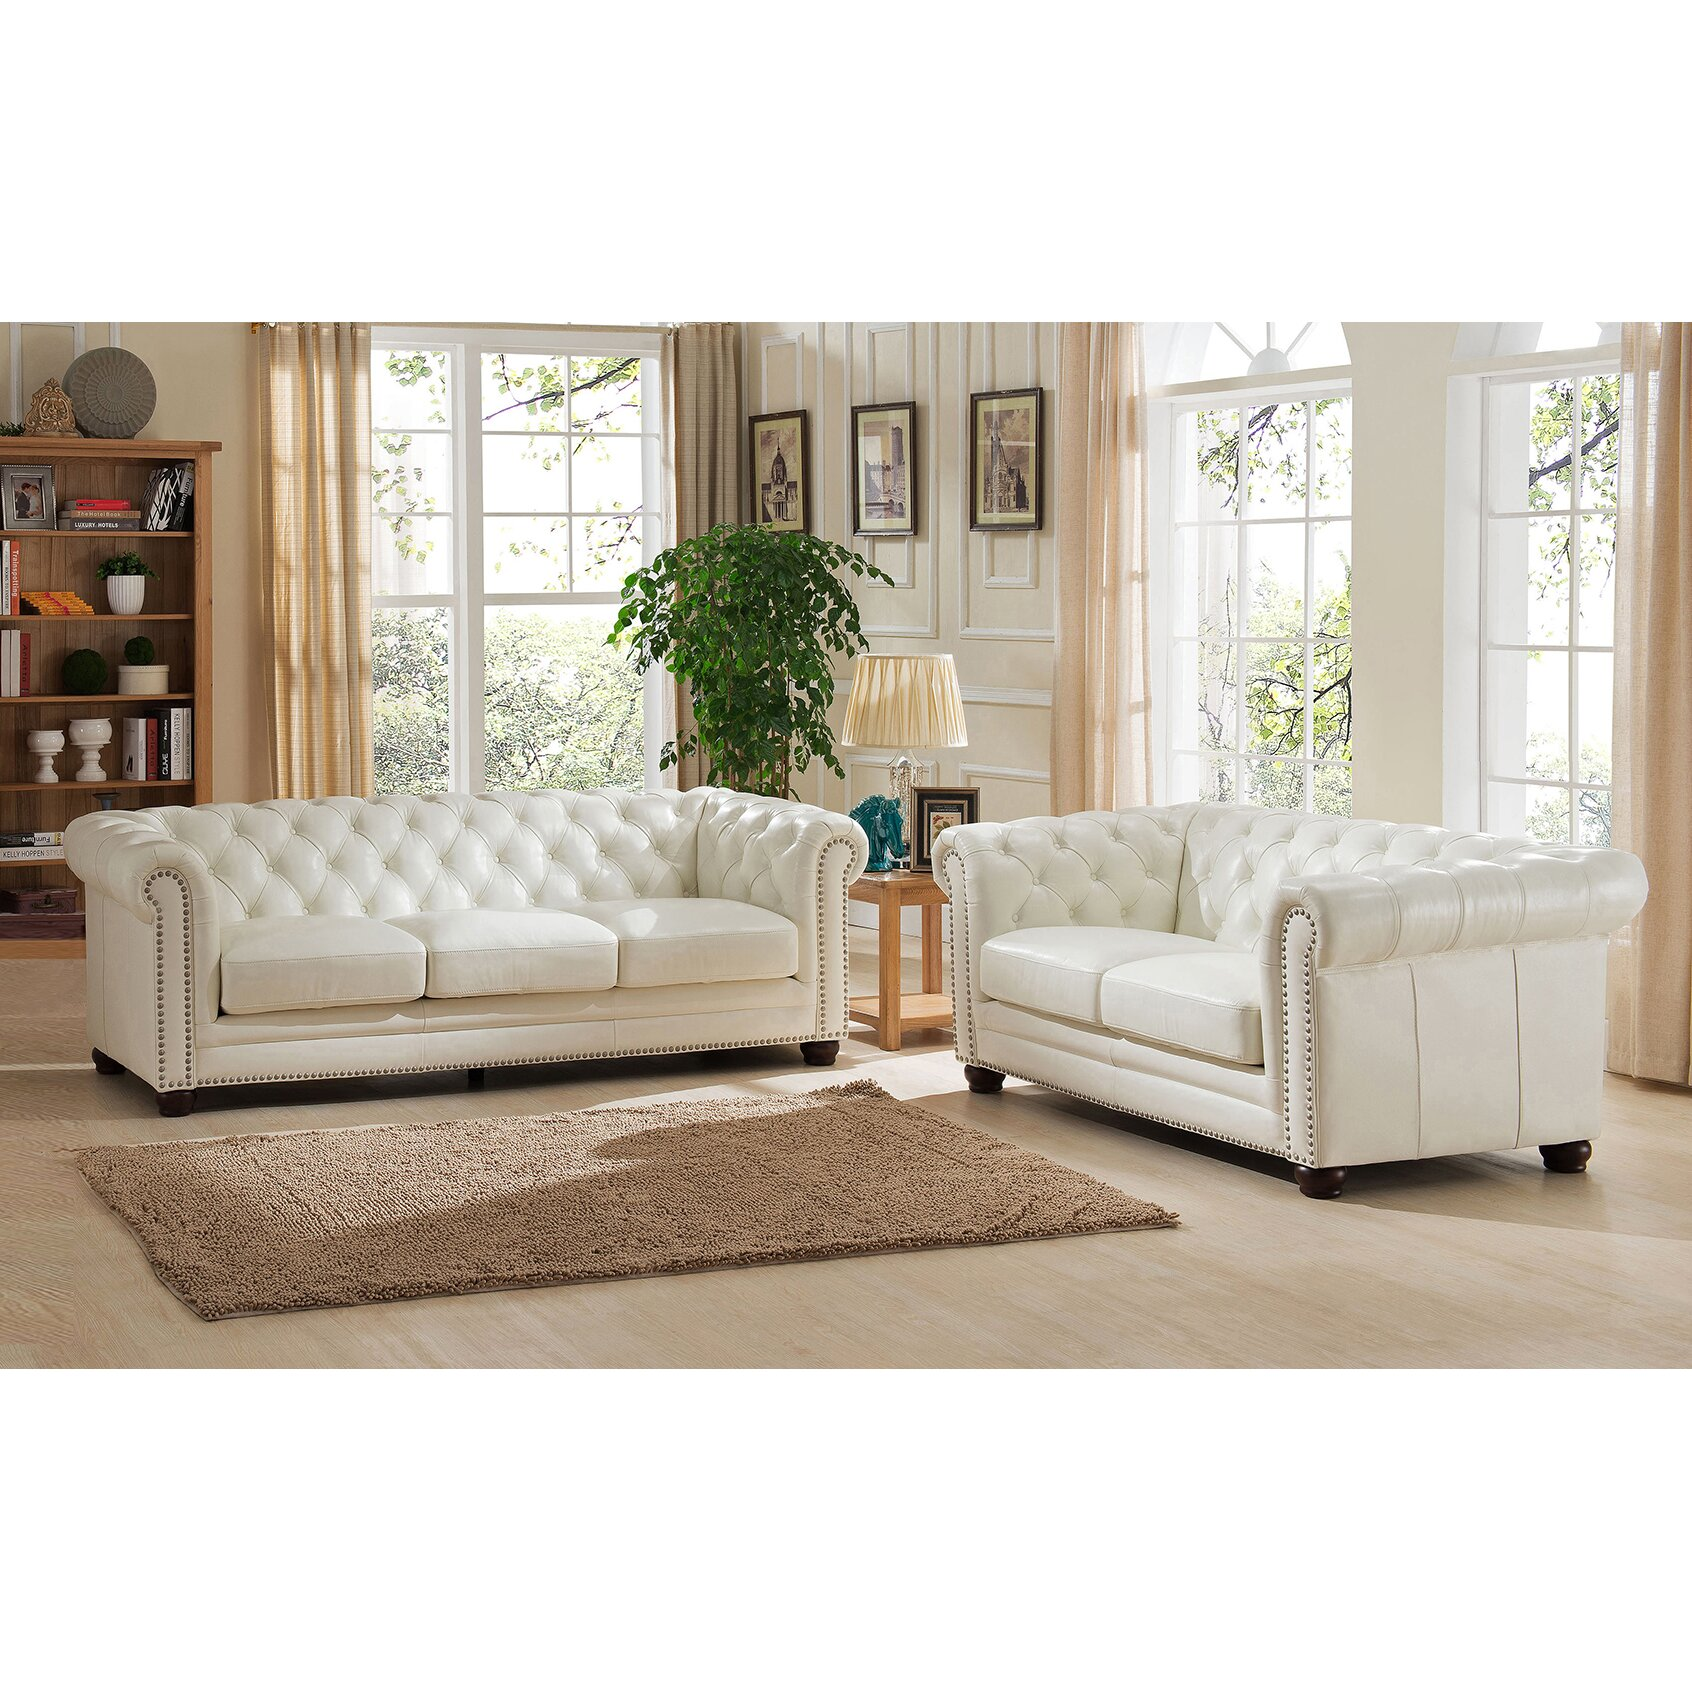 Amax nashville leather sofa and loveseat set reviews for Living room of satoshi review